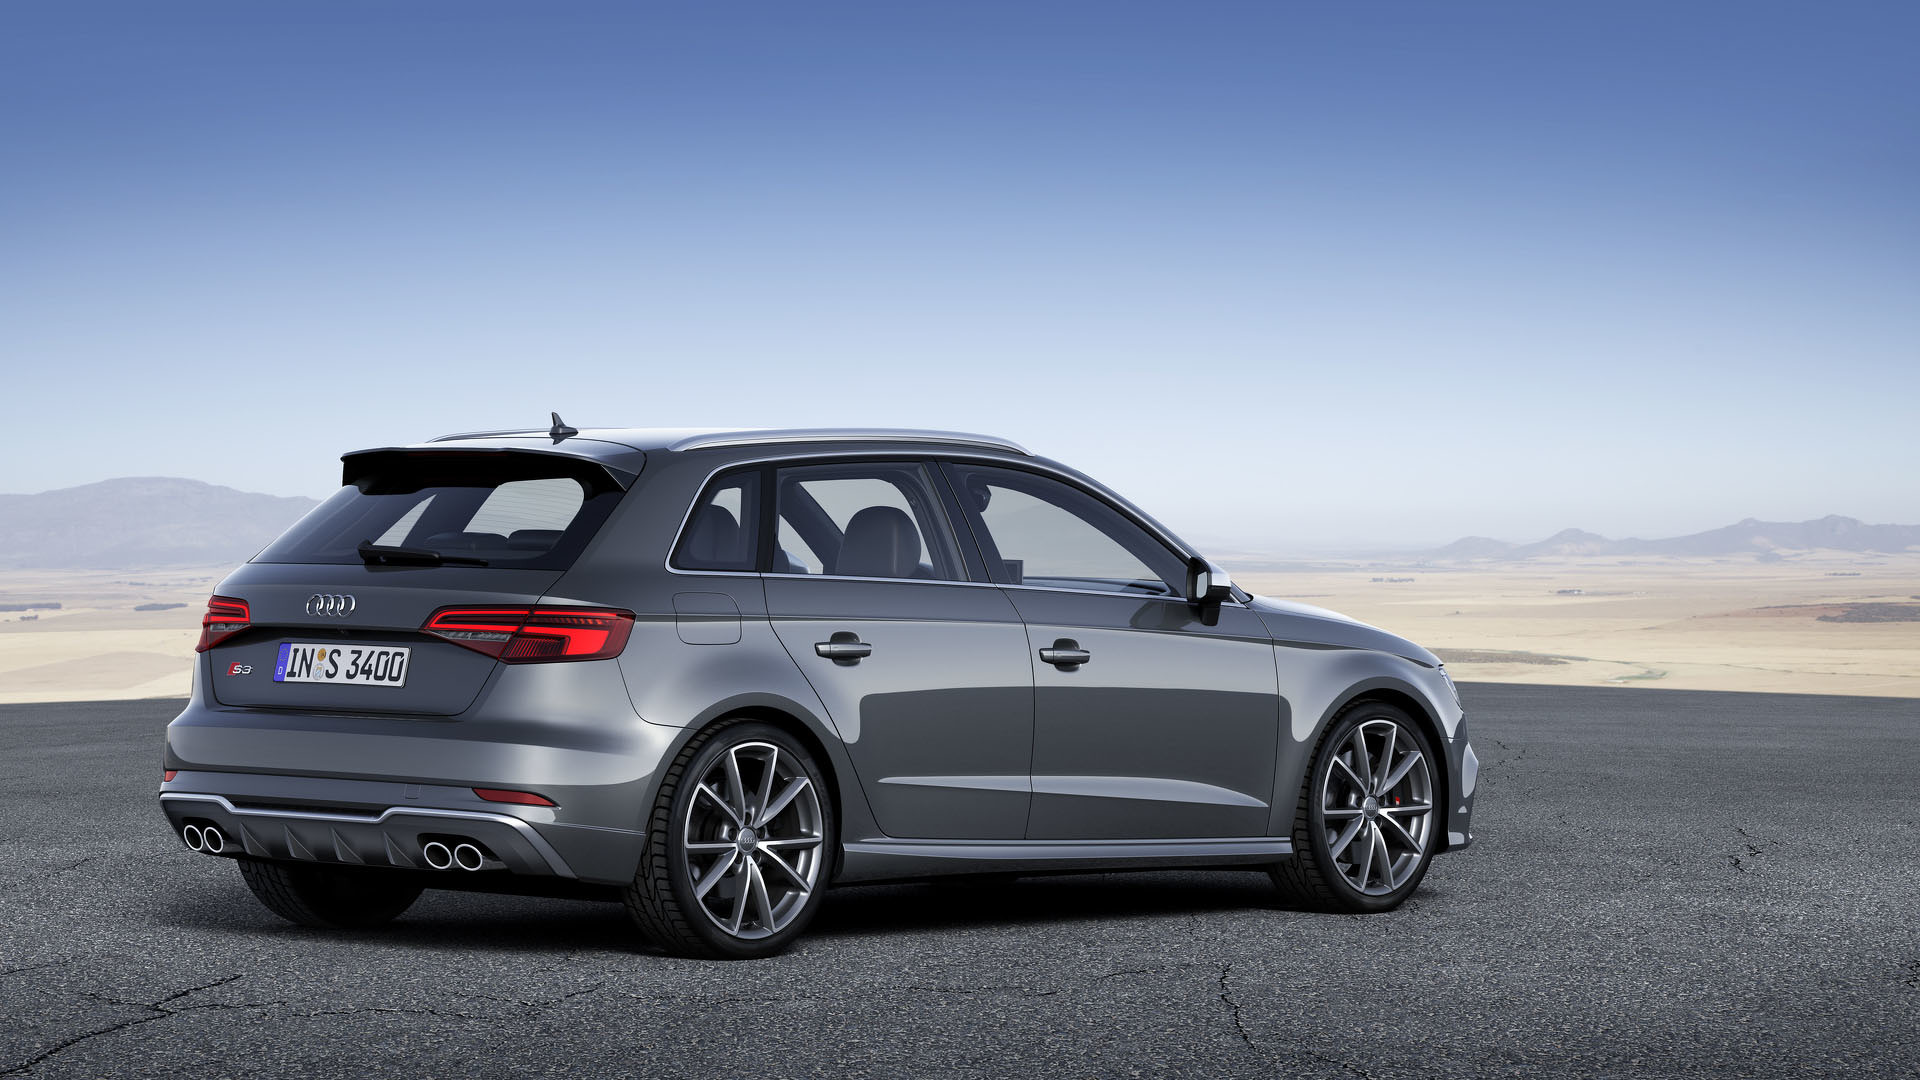 Audi Cars News Facelifted A3 And S3 Range Unveiled